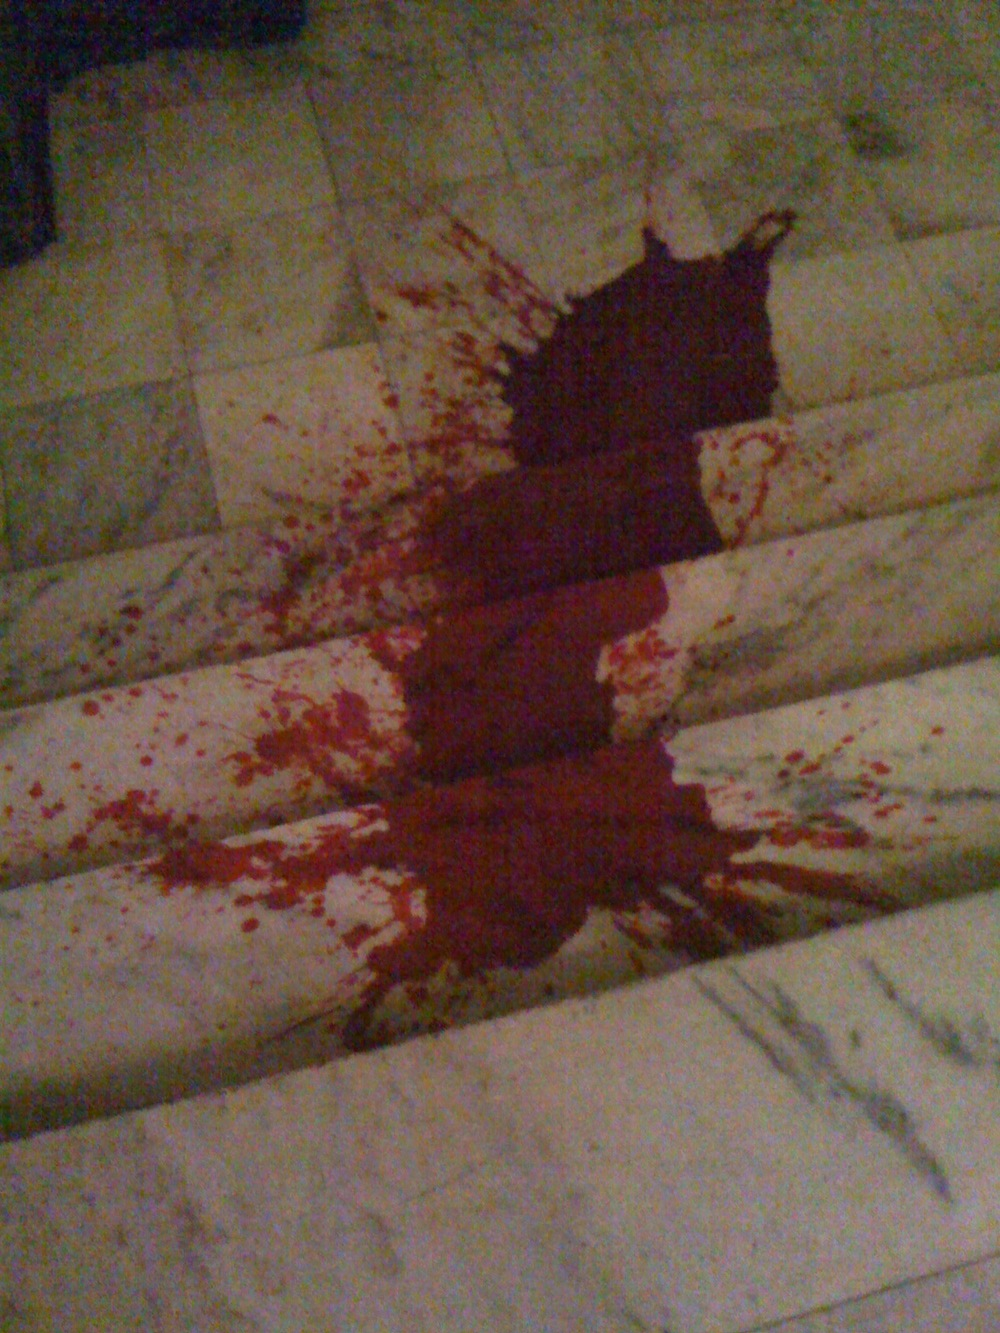 Static blood effect, Haunted Theater, directed by Damon Runnals and Matt Hune, Minneapolis, MN, 2011.